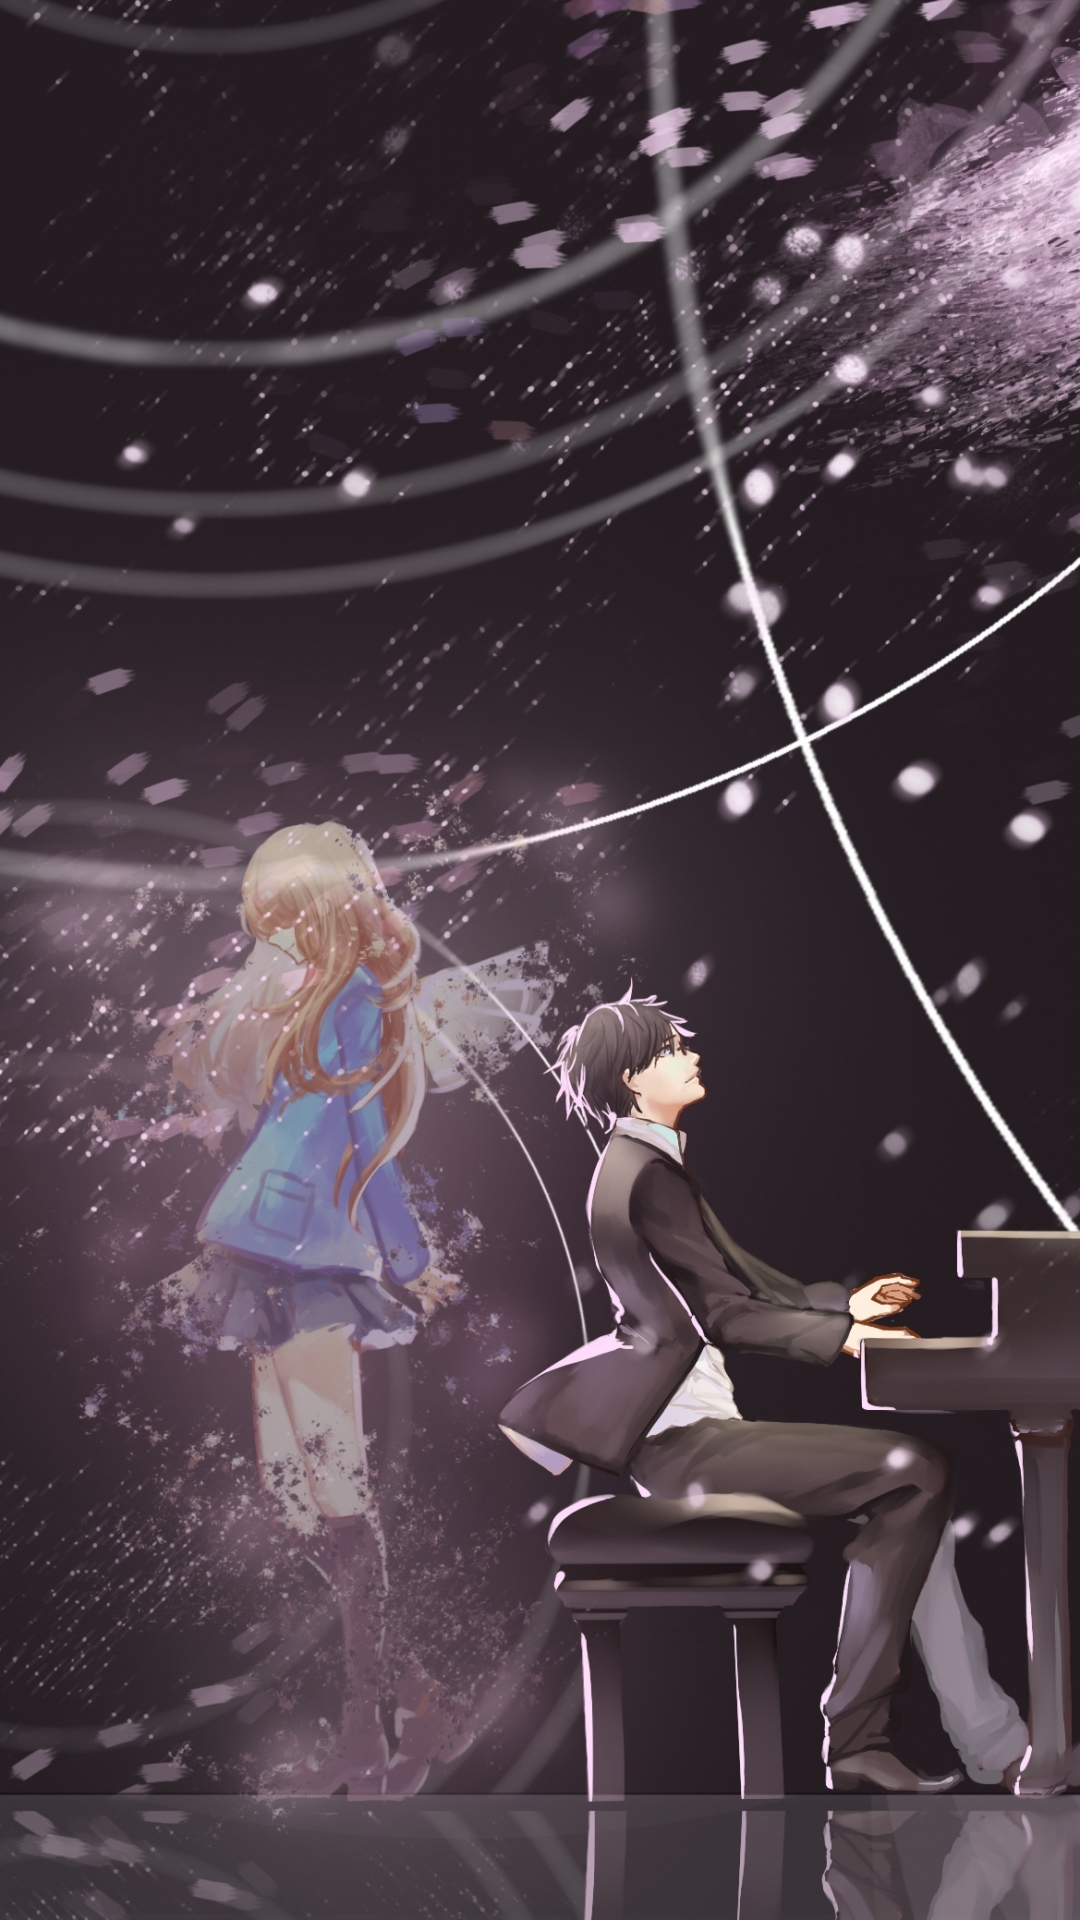 73 your lie in april apple/iphone 5 (640x1136) wallpapers - mobile abyss